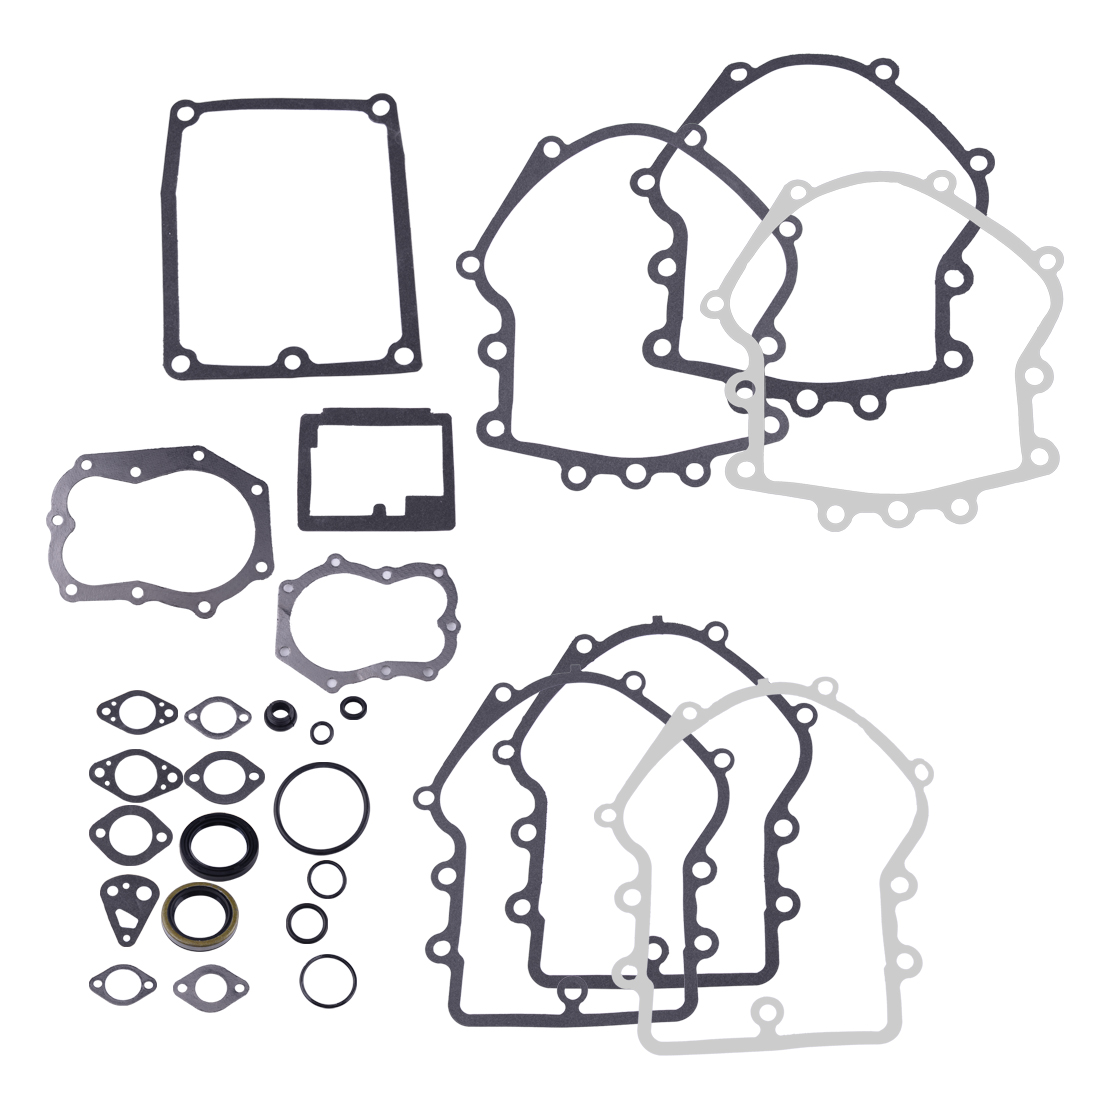 LETAOSK Gasket Kit with Seals Replaces Garden Tool Parts